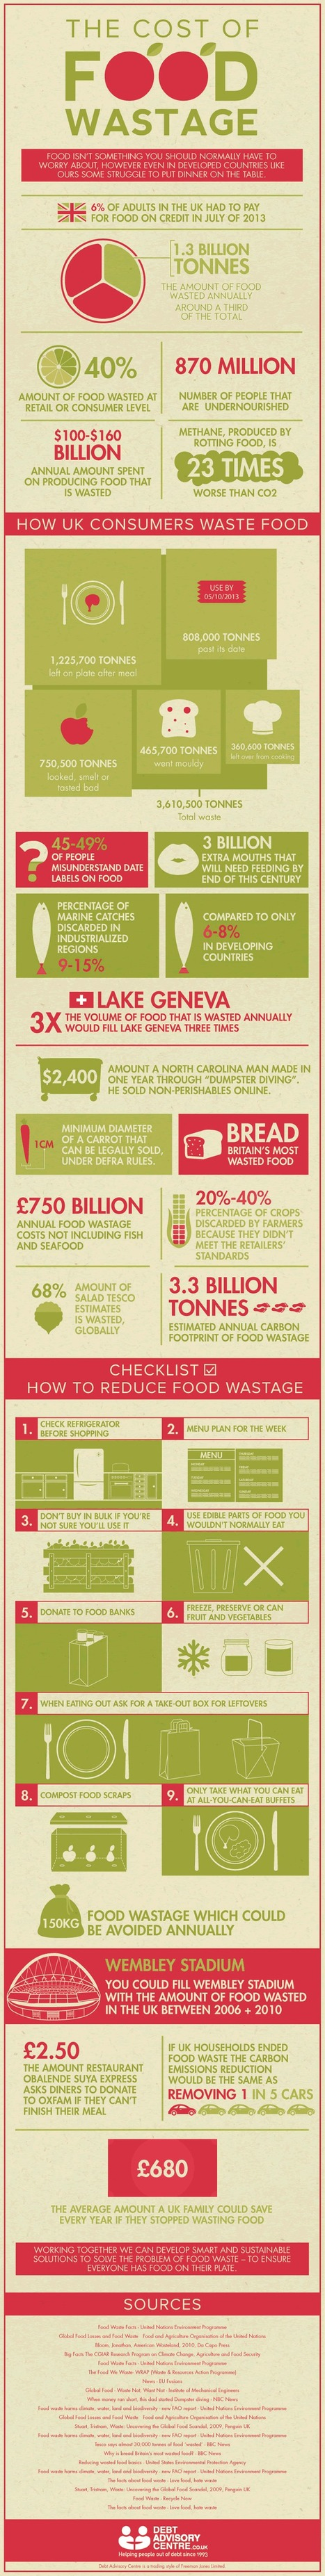 The Cost of Food Wastage (Infographic) | Sustain Our Earth | Scoop.it